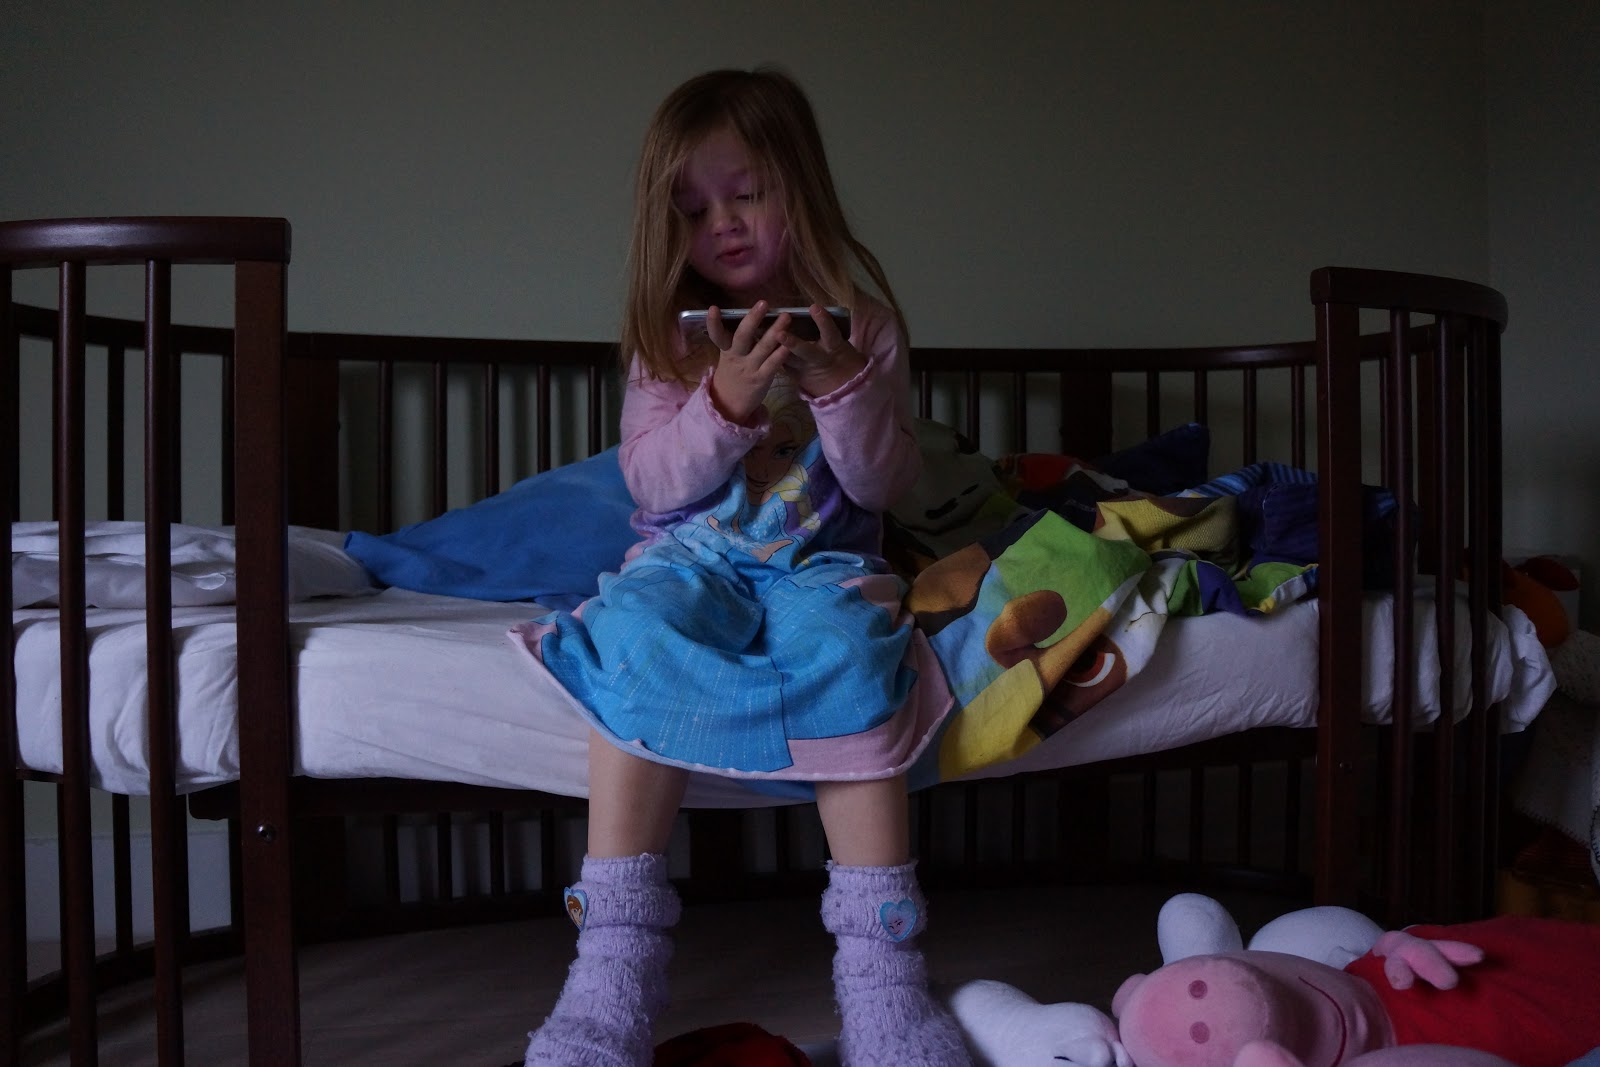 toddler girl sitting on bed watching a mobile film